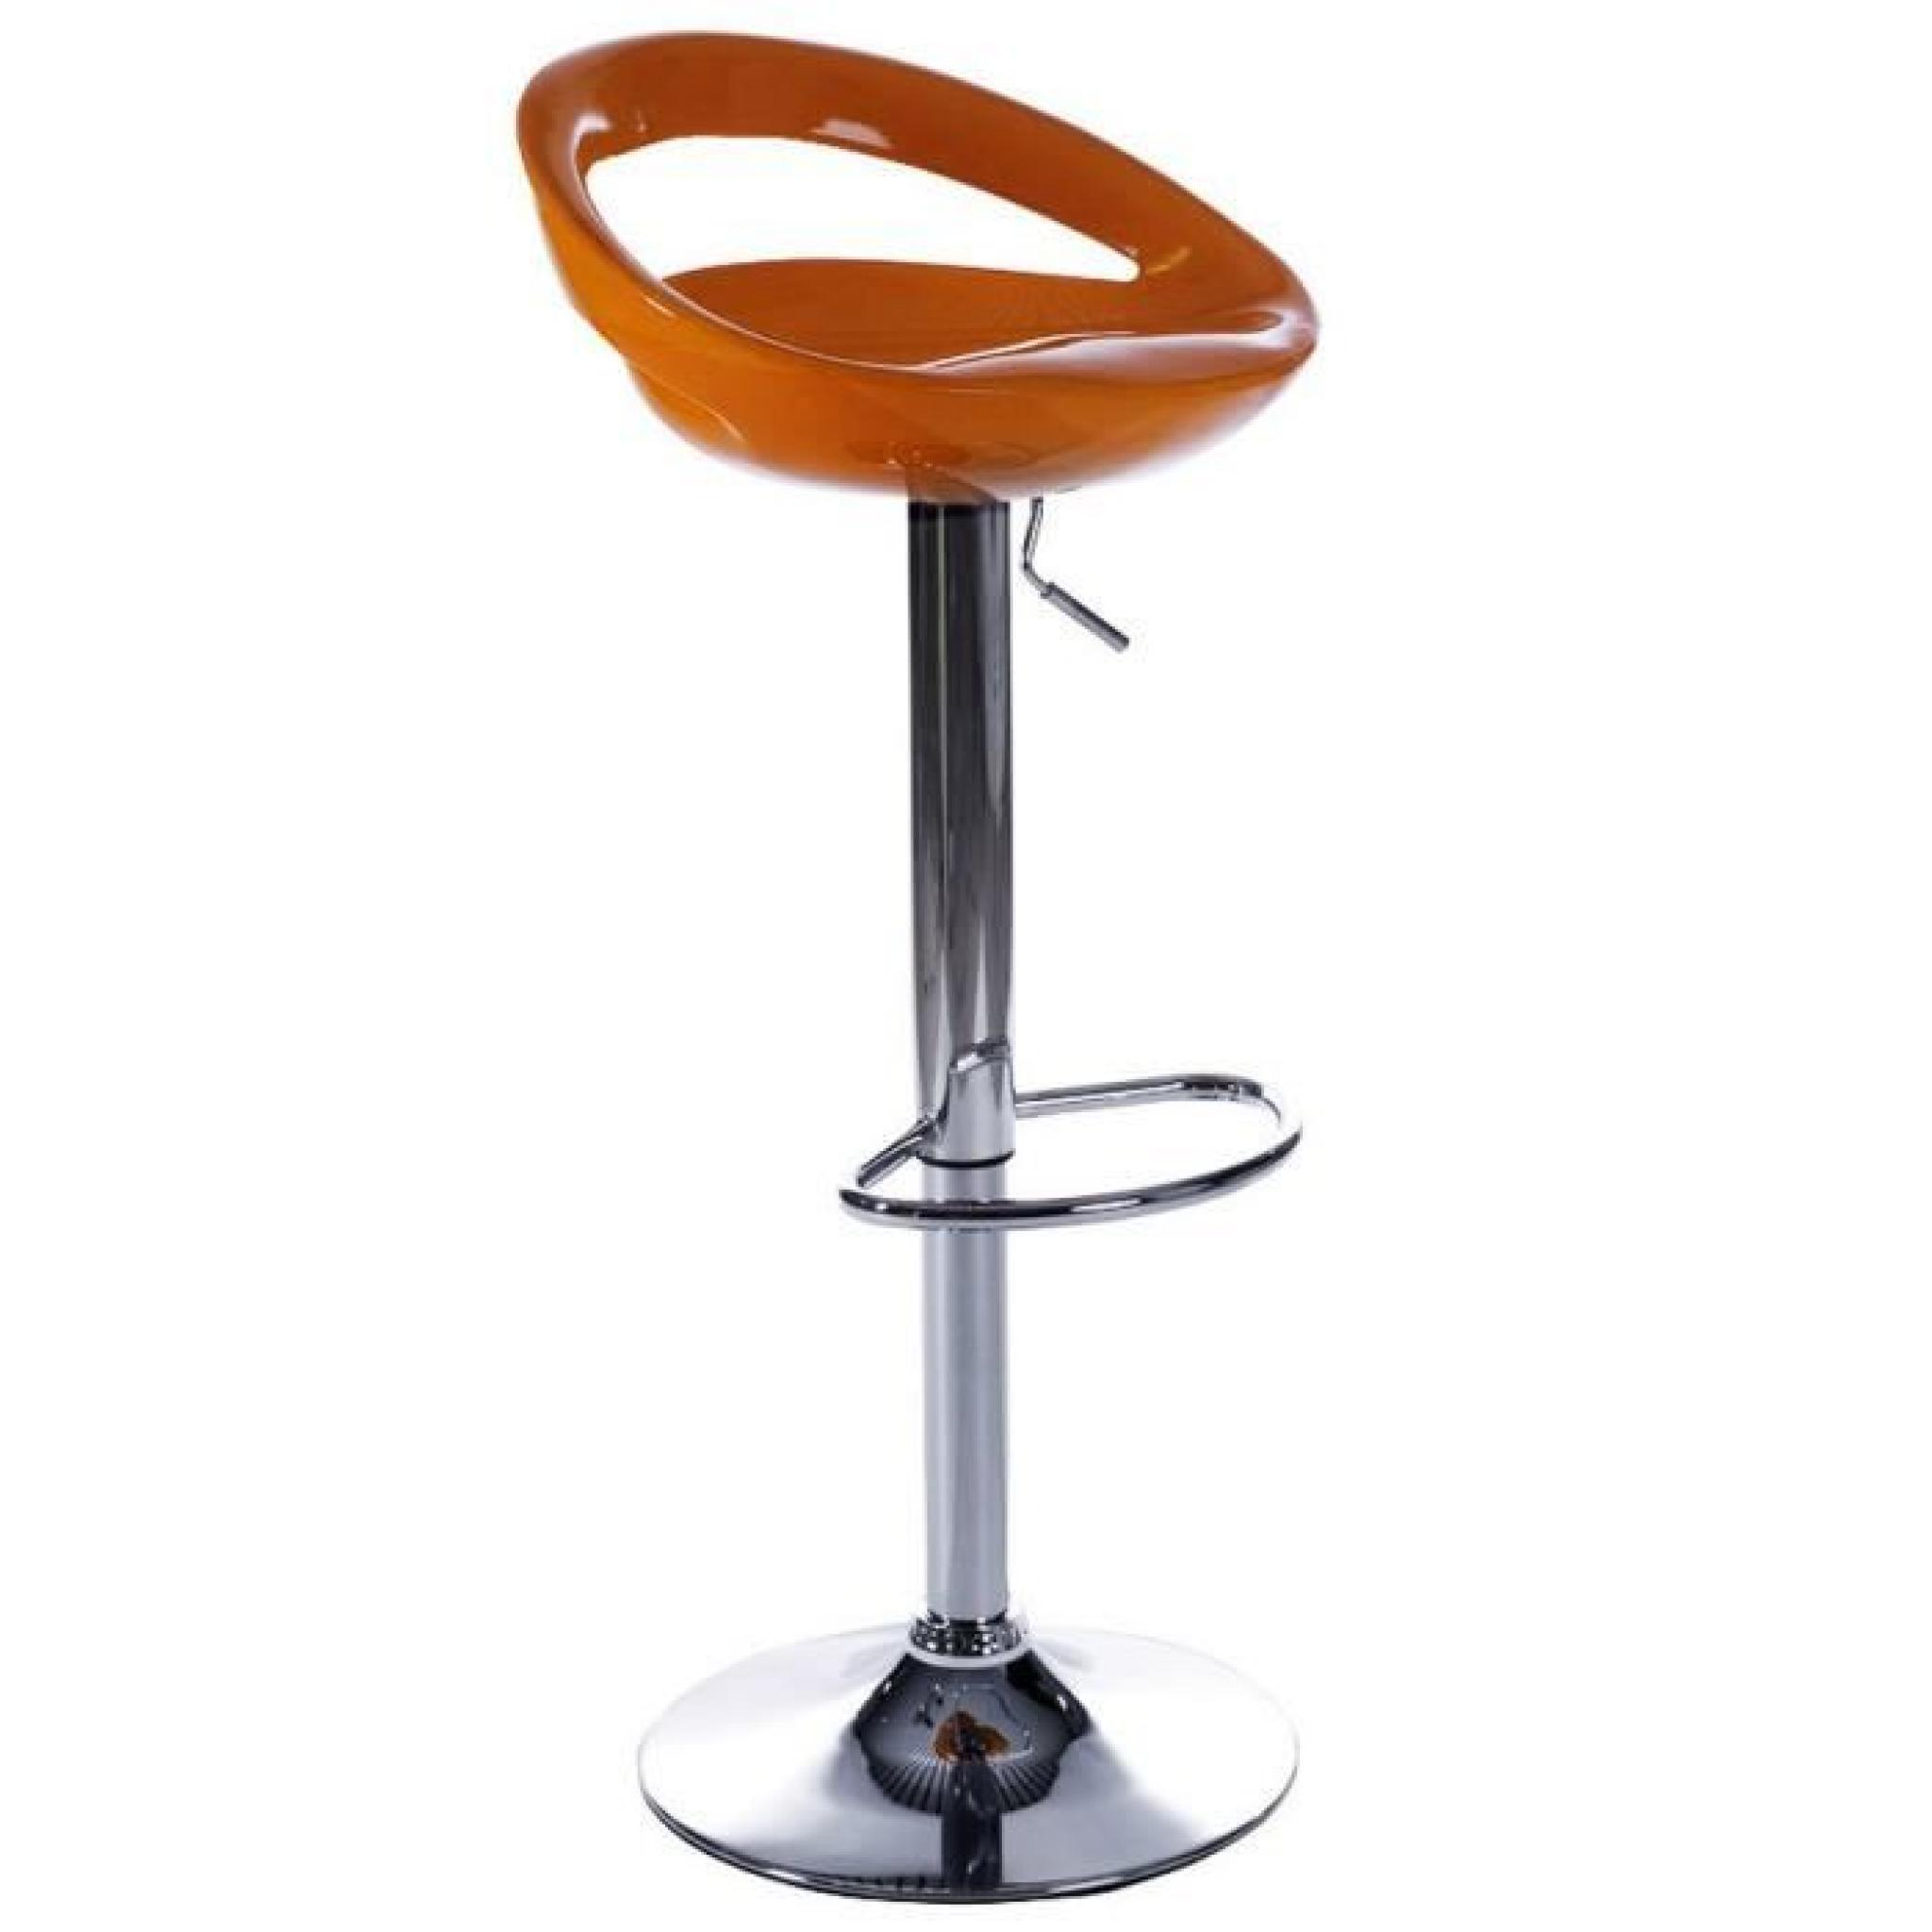 tabourets de bar moderne orange comet lot de 2 achat. Black Bedroom Furniture Sets. Home Design Ideas